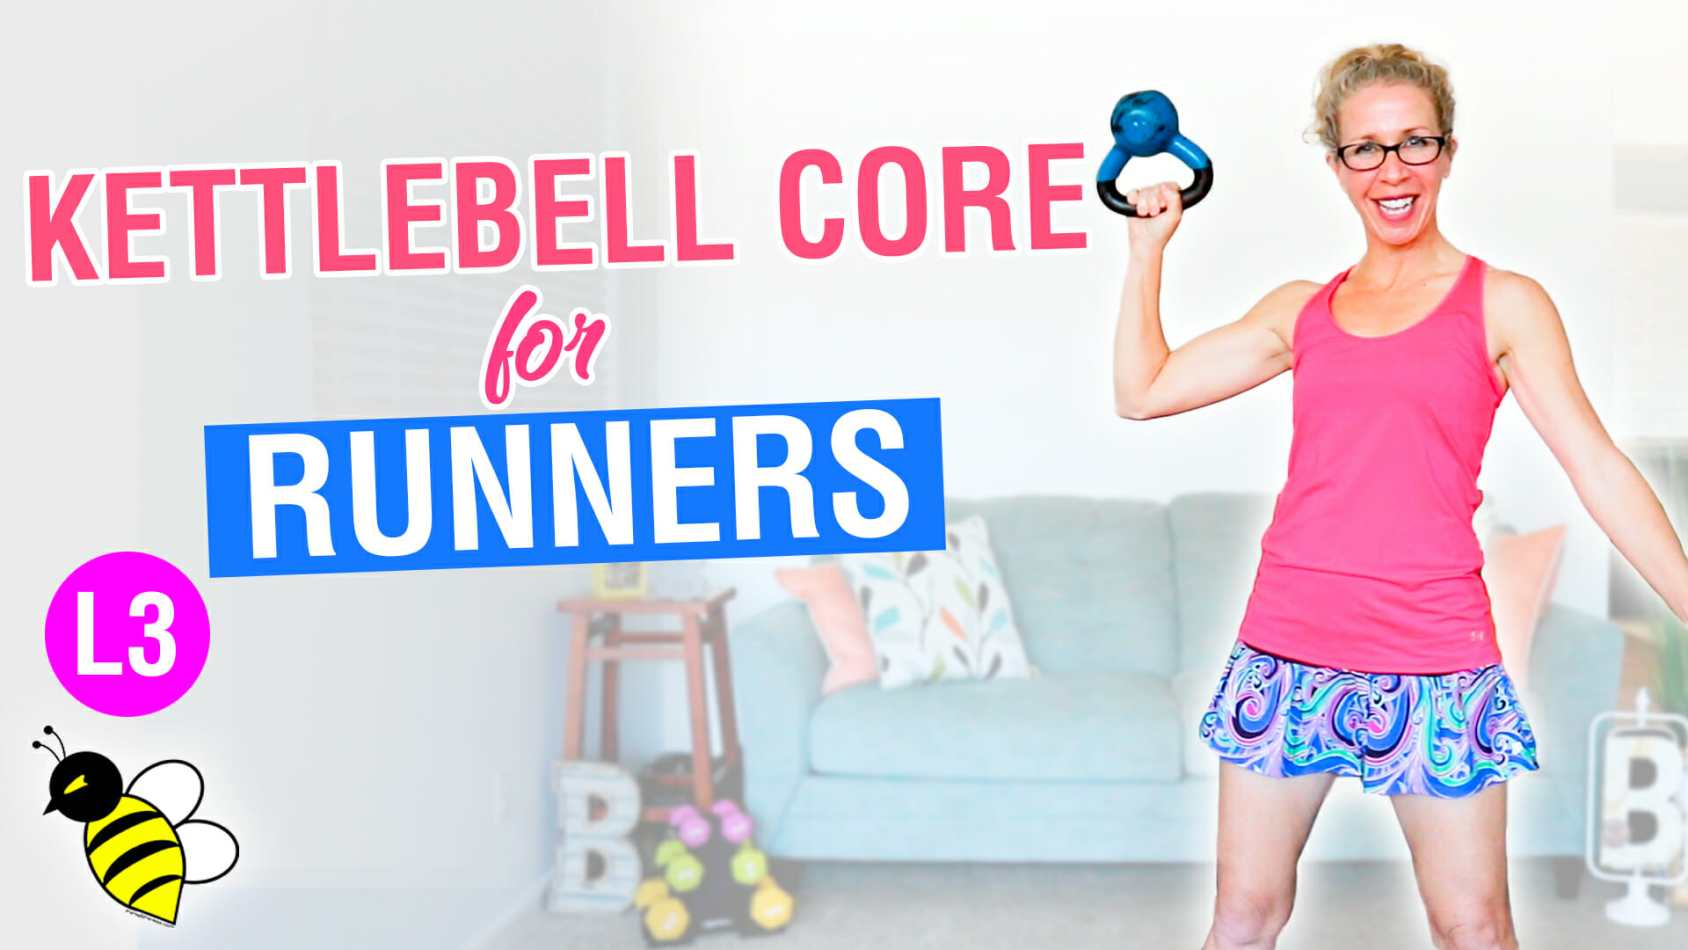 PR STRONG Killer Kettlebell CORE STRENGTH for RUNNERS